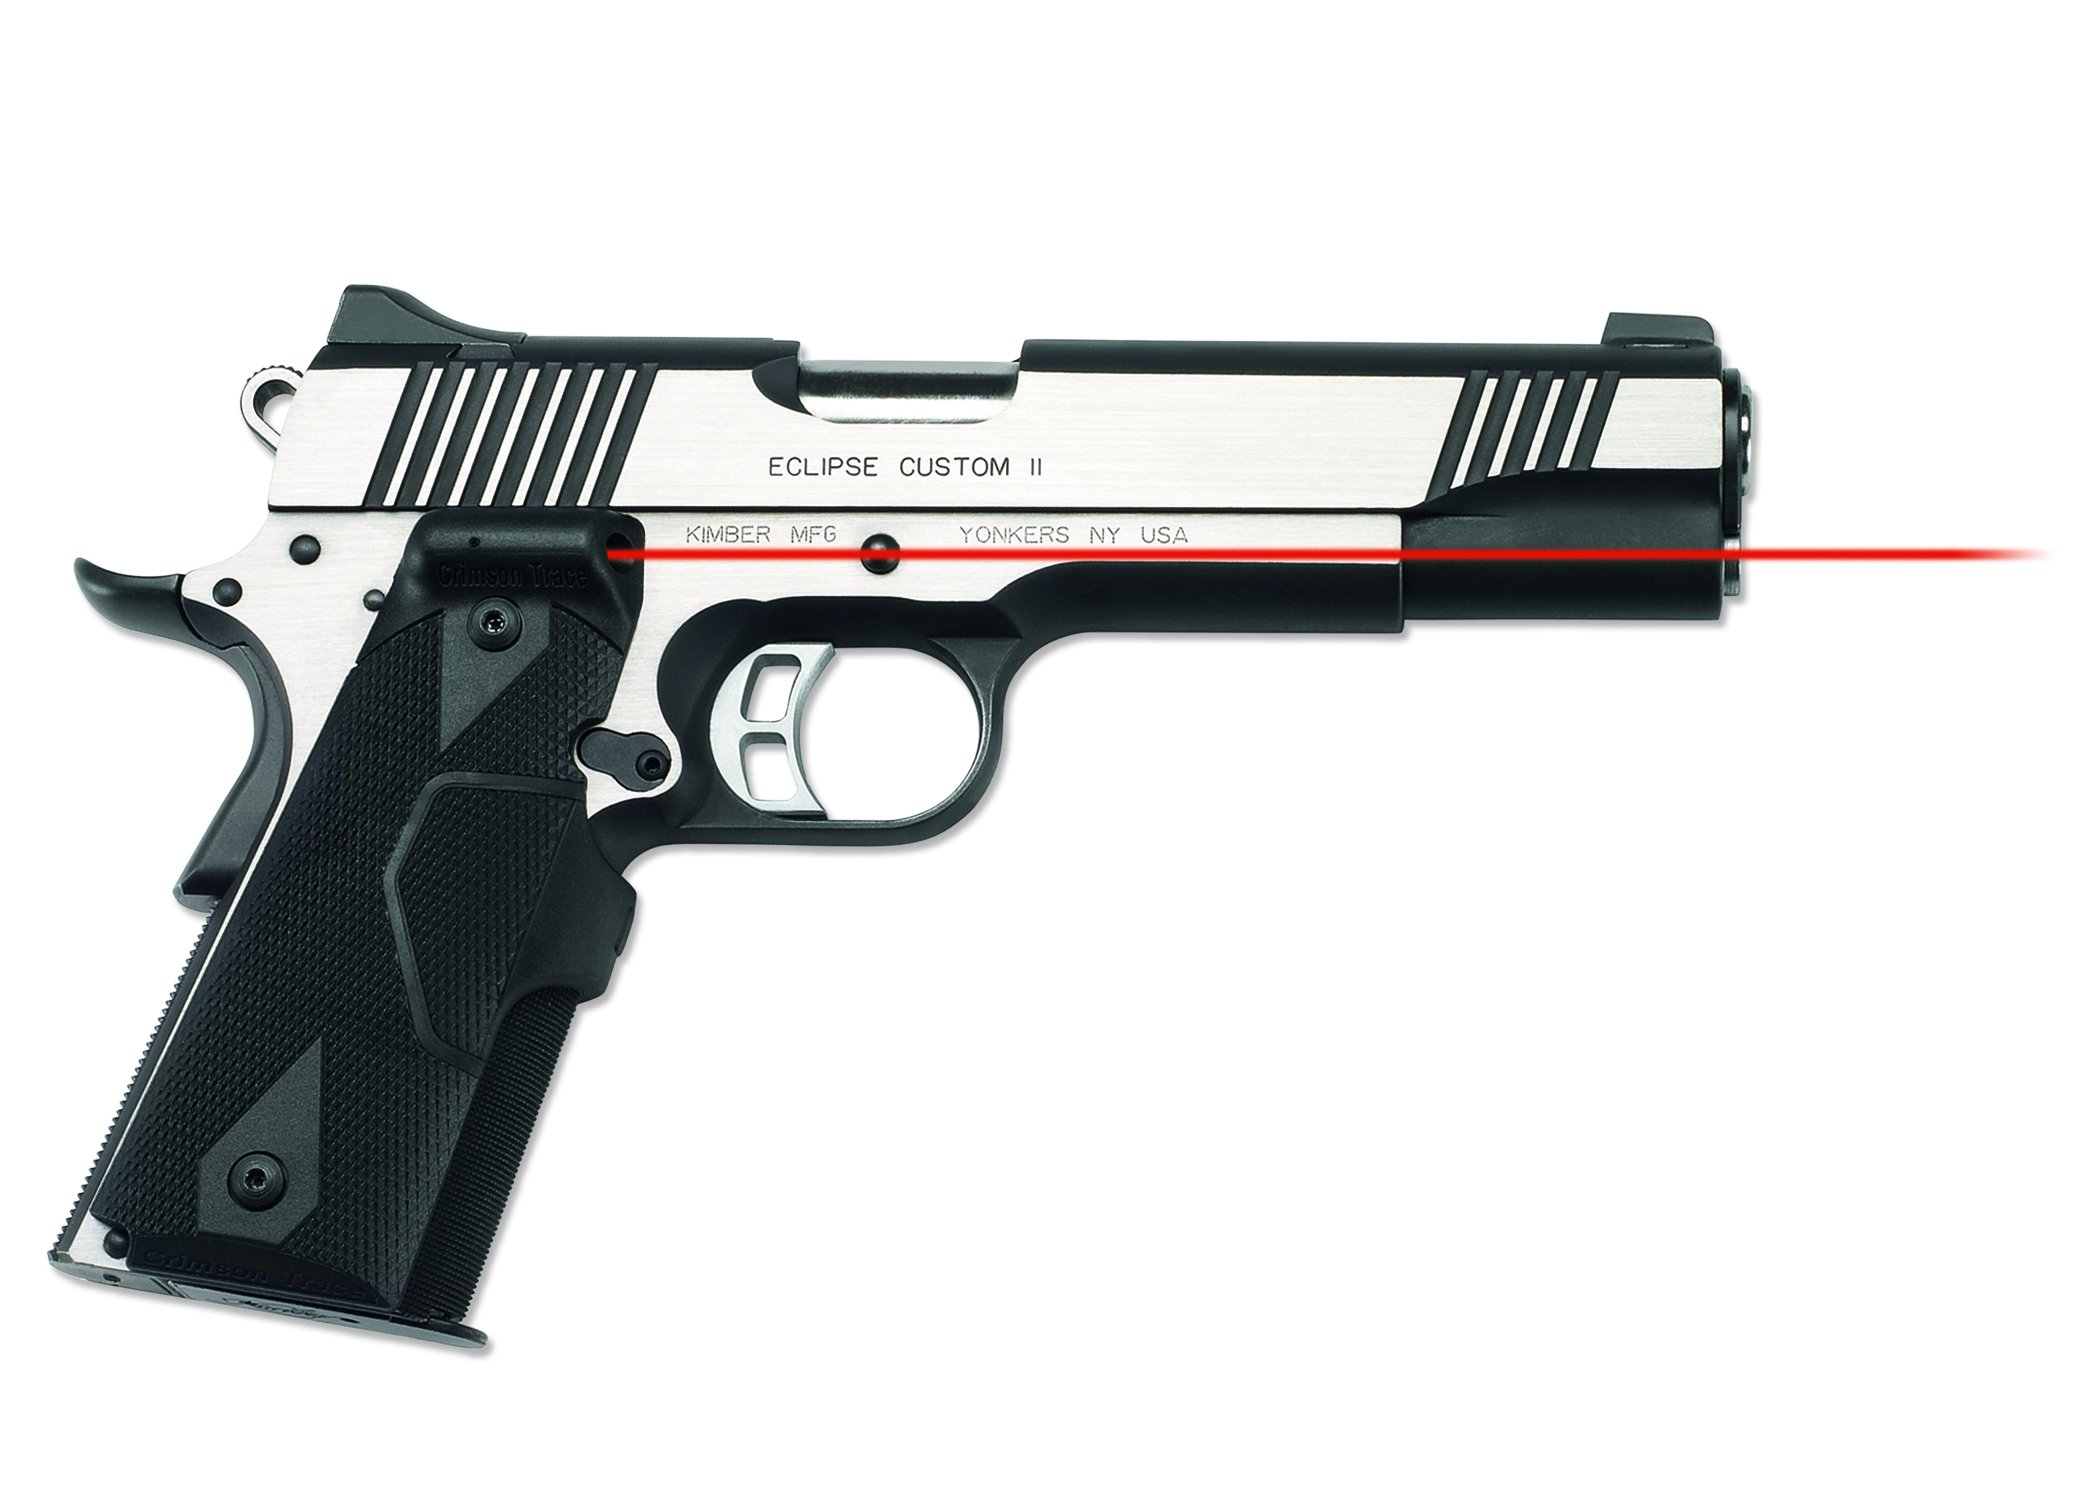 Crimson Trace LG-401 Lasergrips Red Laser Sight Grips for 1911 Full-Size Pistols by Crimson Trace (Image #2)